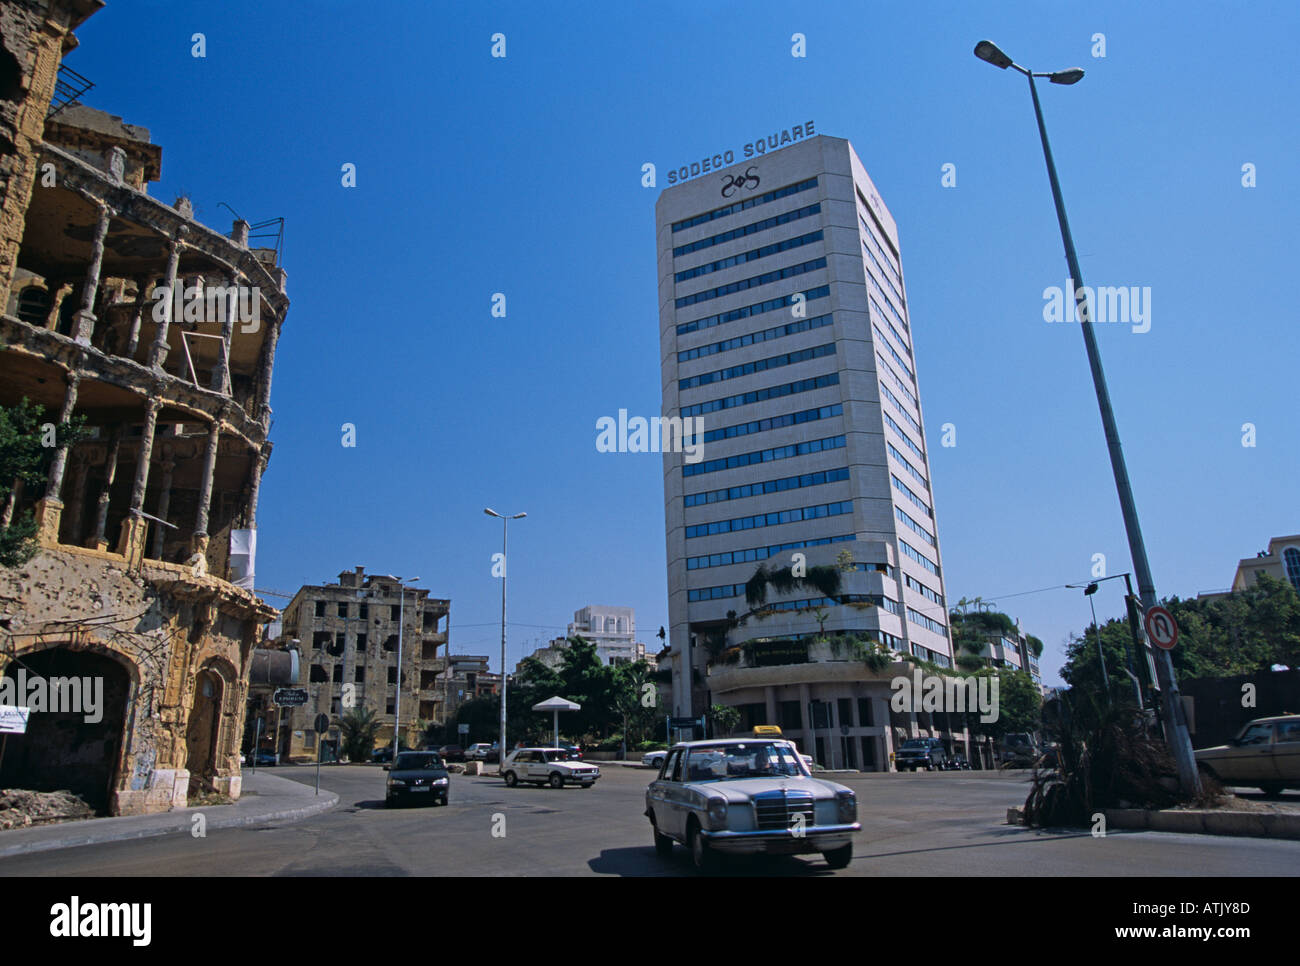 sodeco square in beirut lebanon stock photo royalty free image 5333900 alamy. Black Bedroom Furniture Sets. Home Design Ideas